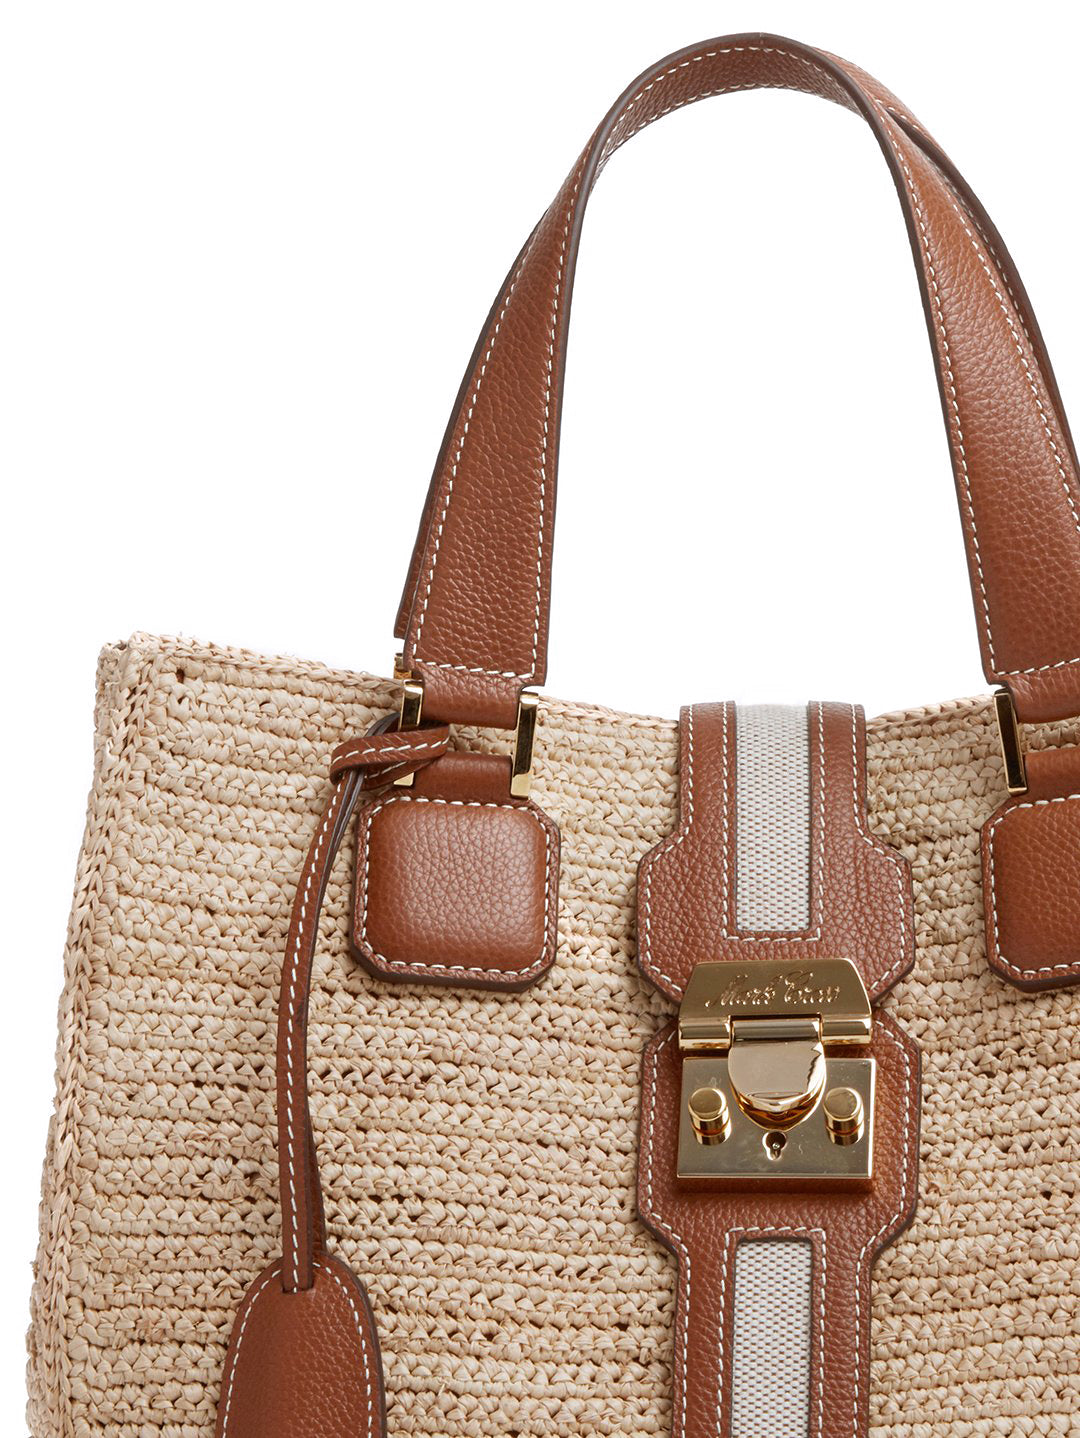 Mark Cross Riviera Raffia & Leather Tote Bag Tumbled Grain Acorn / Birdseye / Natural Raffia Detail